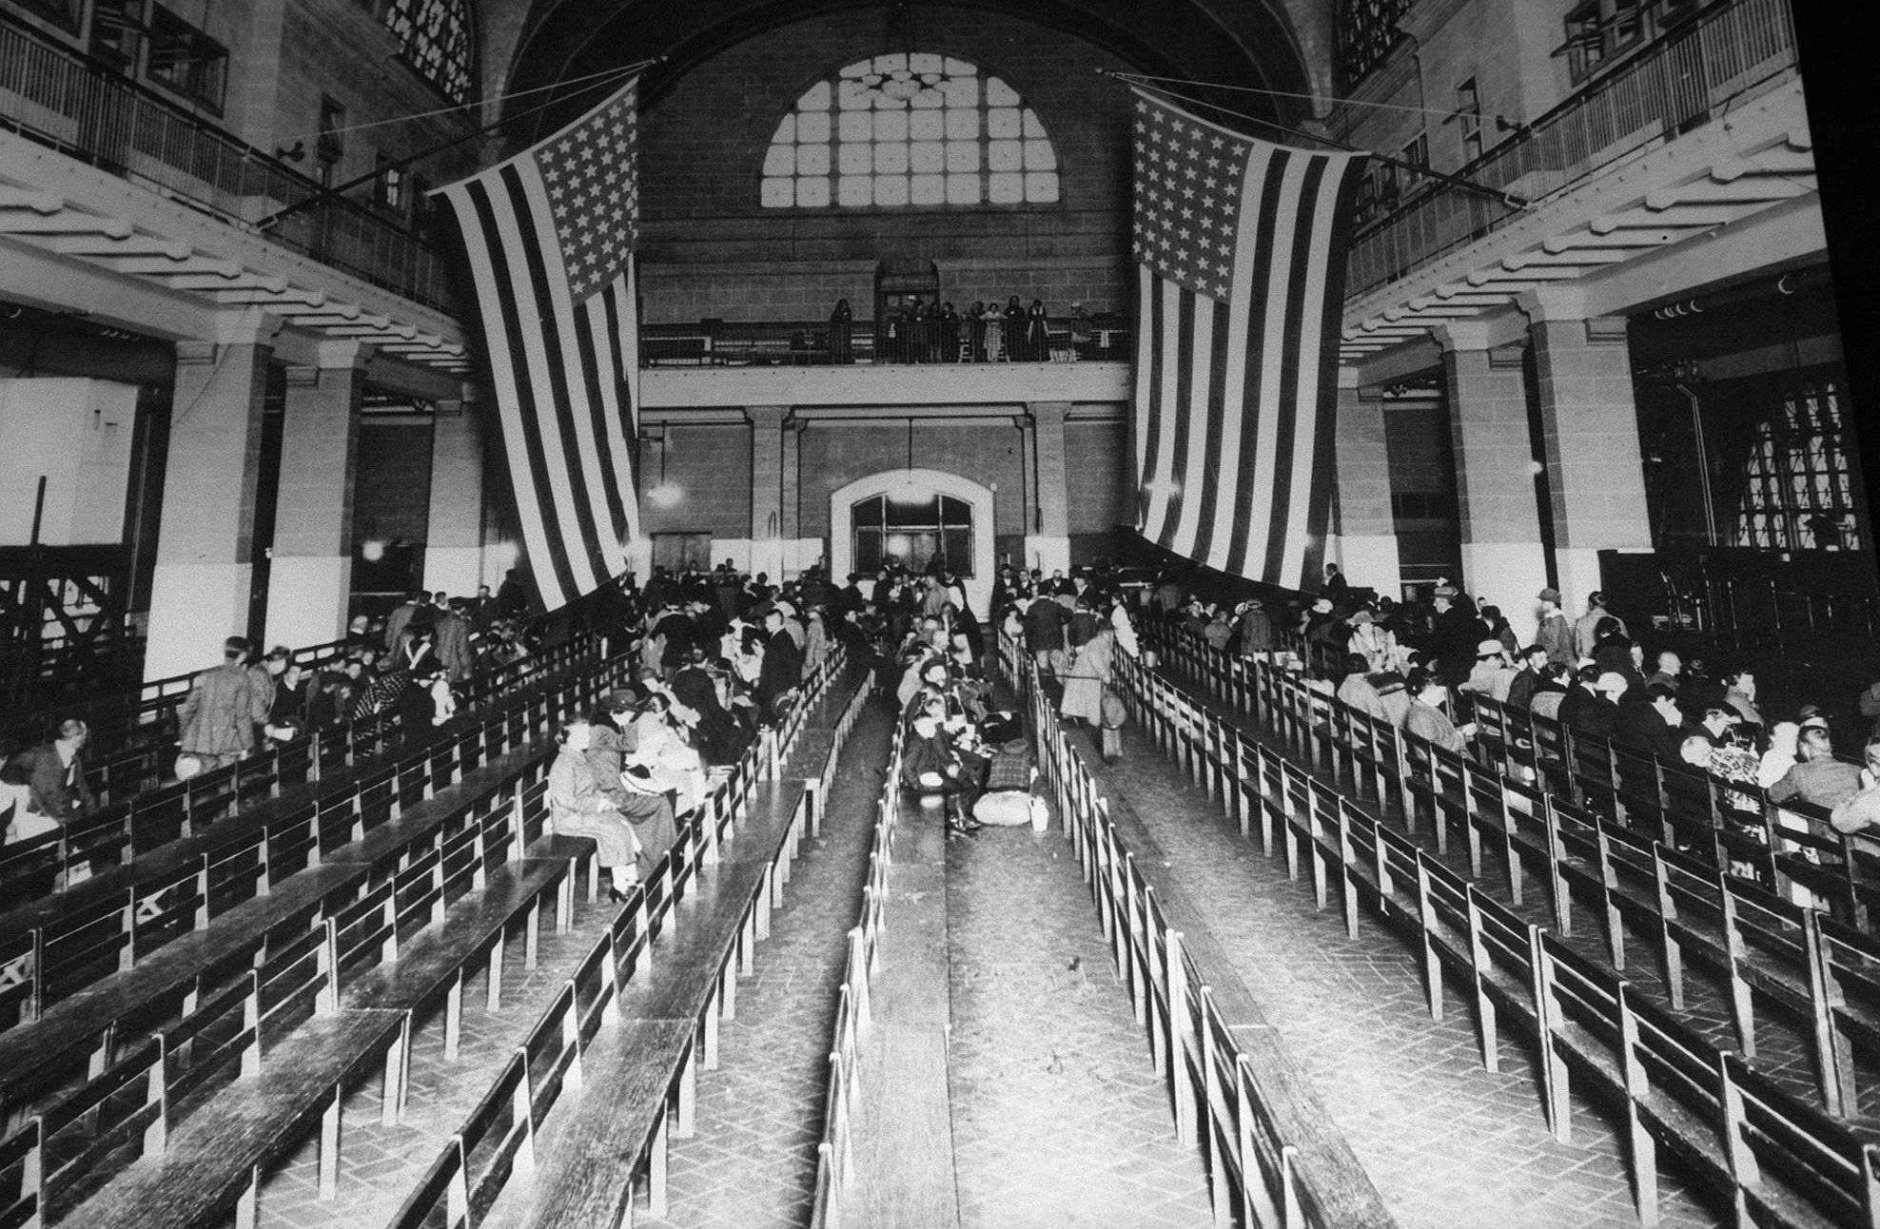 FILE--In this is a 1924 file photo, the registry room at Ellis Island in New York harbor. Immigration to the U.S has come in swells and dips over the past two-plus centuries, driven by shifts in U.S. policy, the mood in the country and world events. Labor shortages, racial tension, economic forces, religious prejudice and national security concerns all fit into the picture. (AP Photo/file)